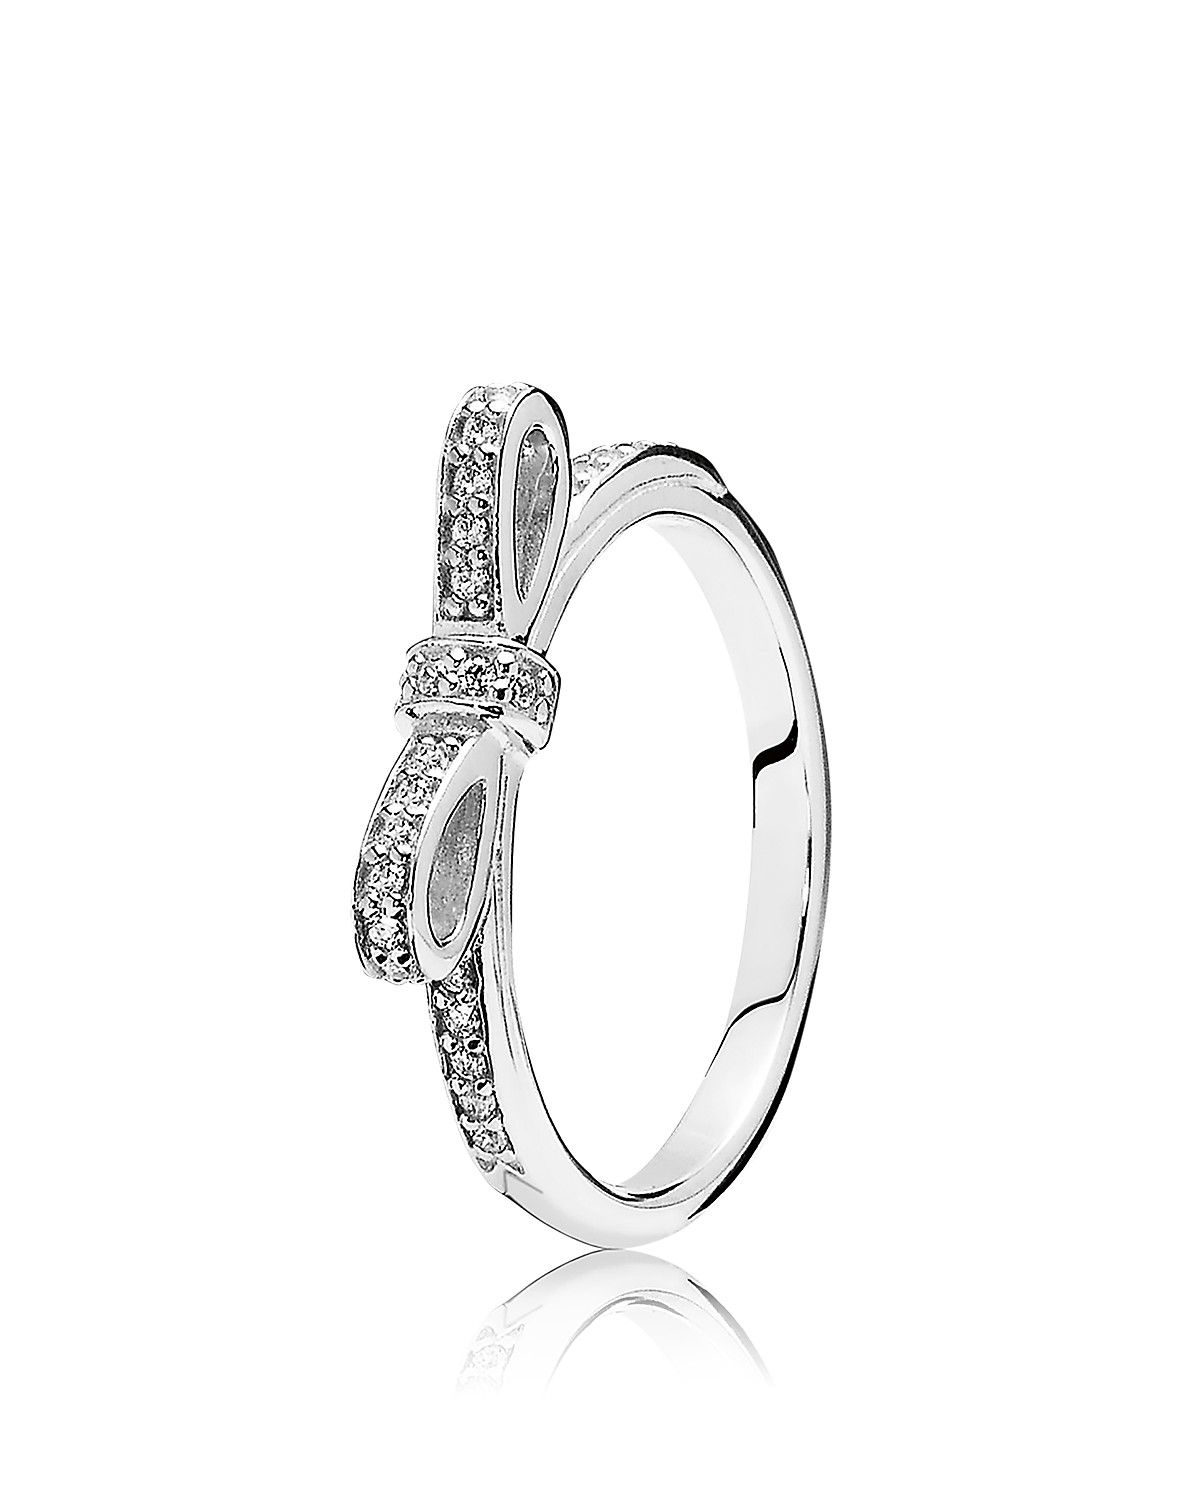 7e64e843b PANDORA Ring - Sterling Silver & Cubic Zirconia Sparkling Bow |  Bloomingdale's